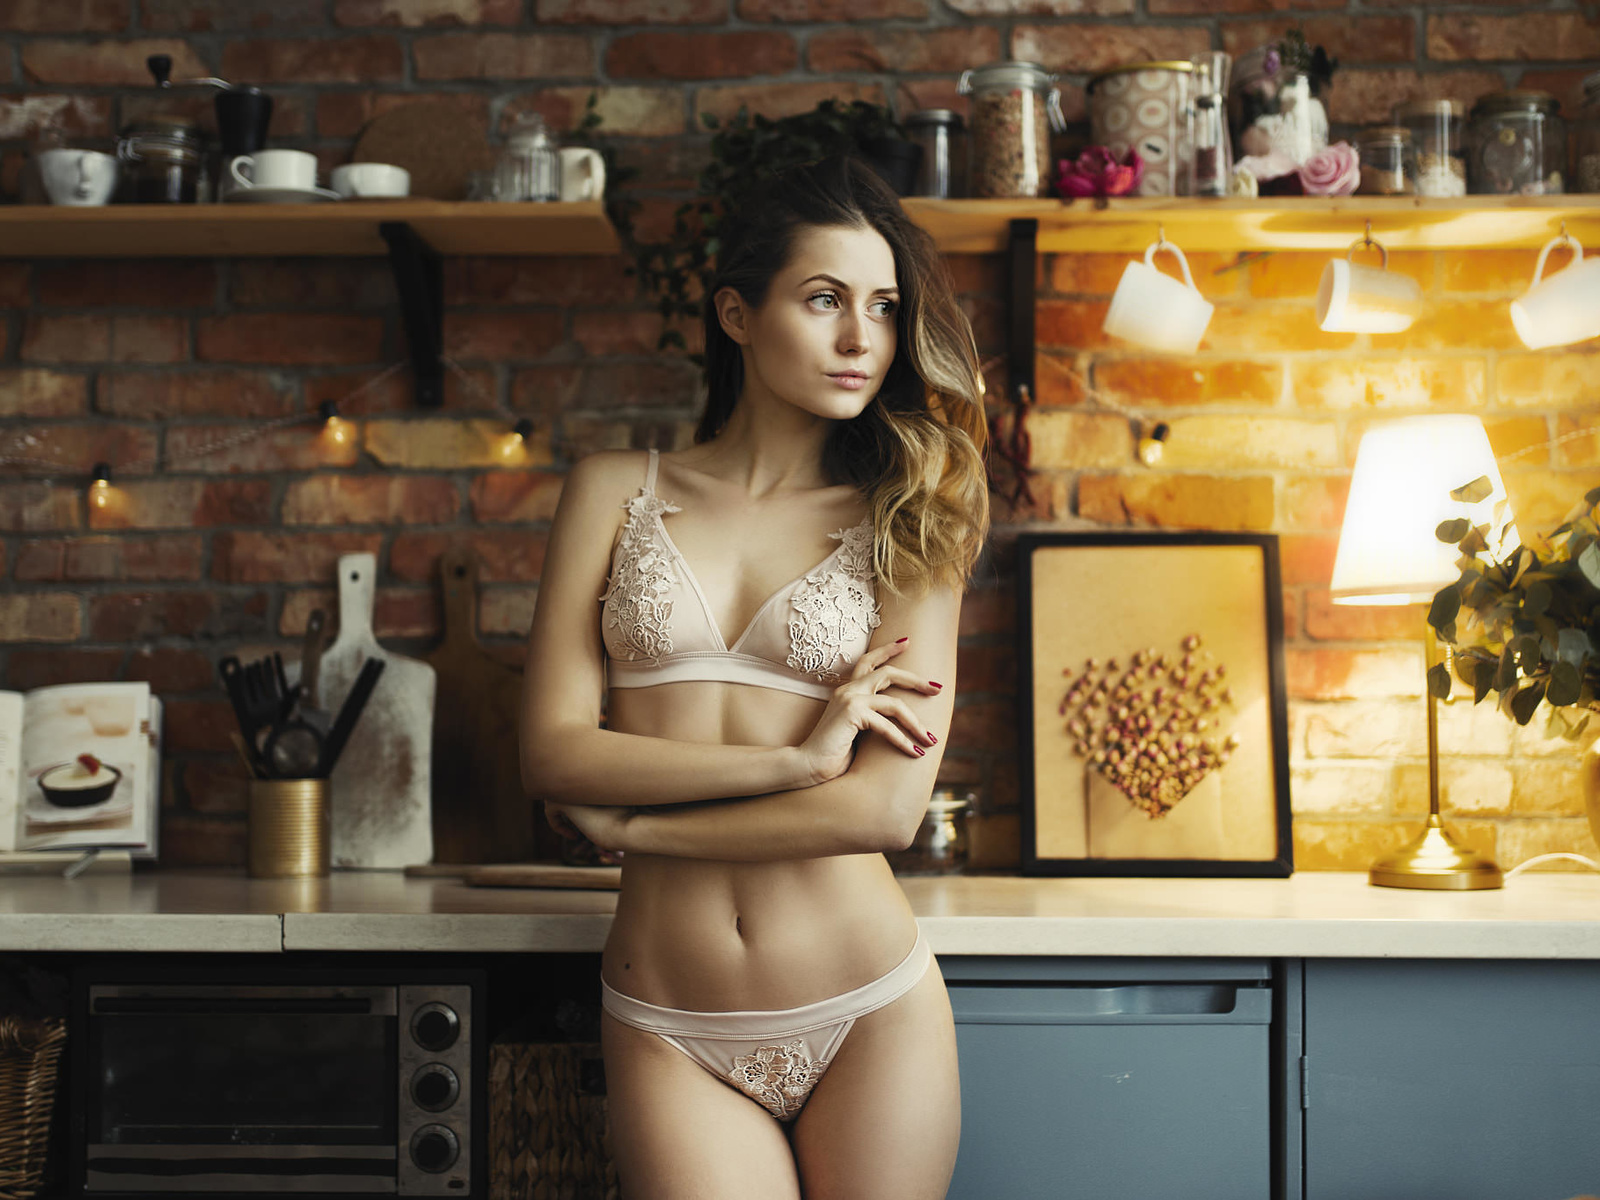 women, lingerie, belly, red nails, kitchen, lamp, looking away, brunette, arms crossed, bricks